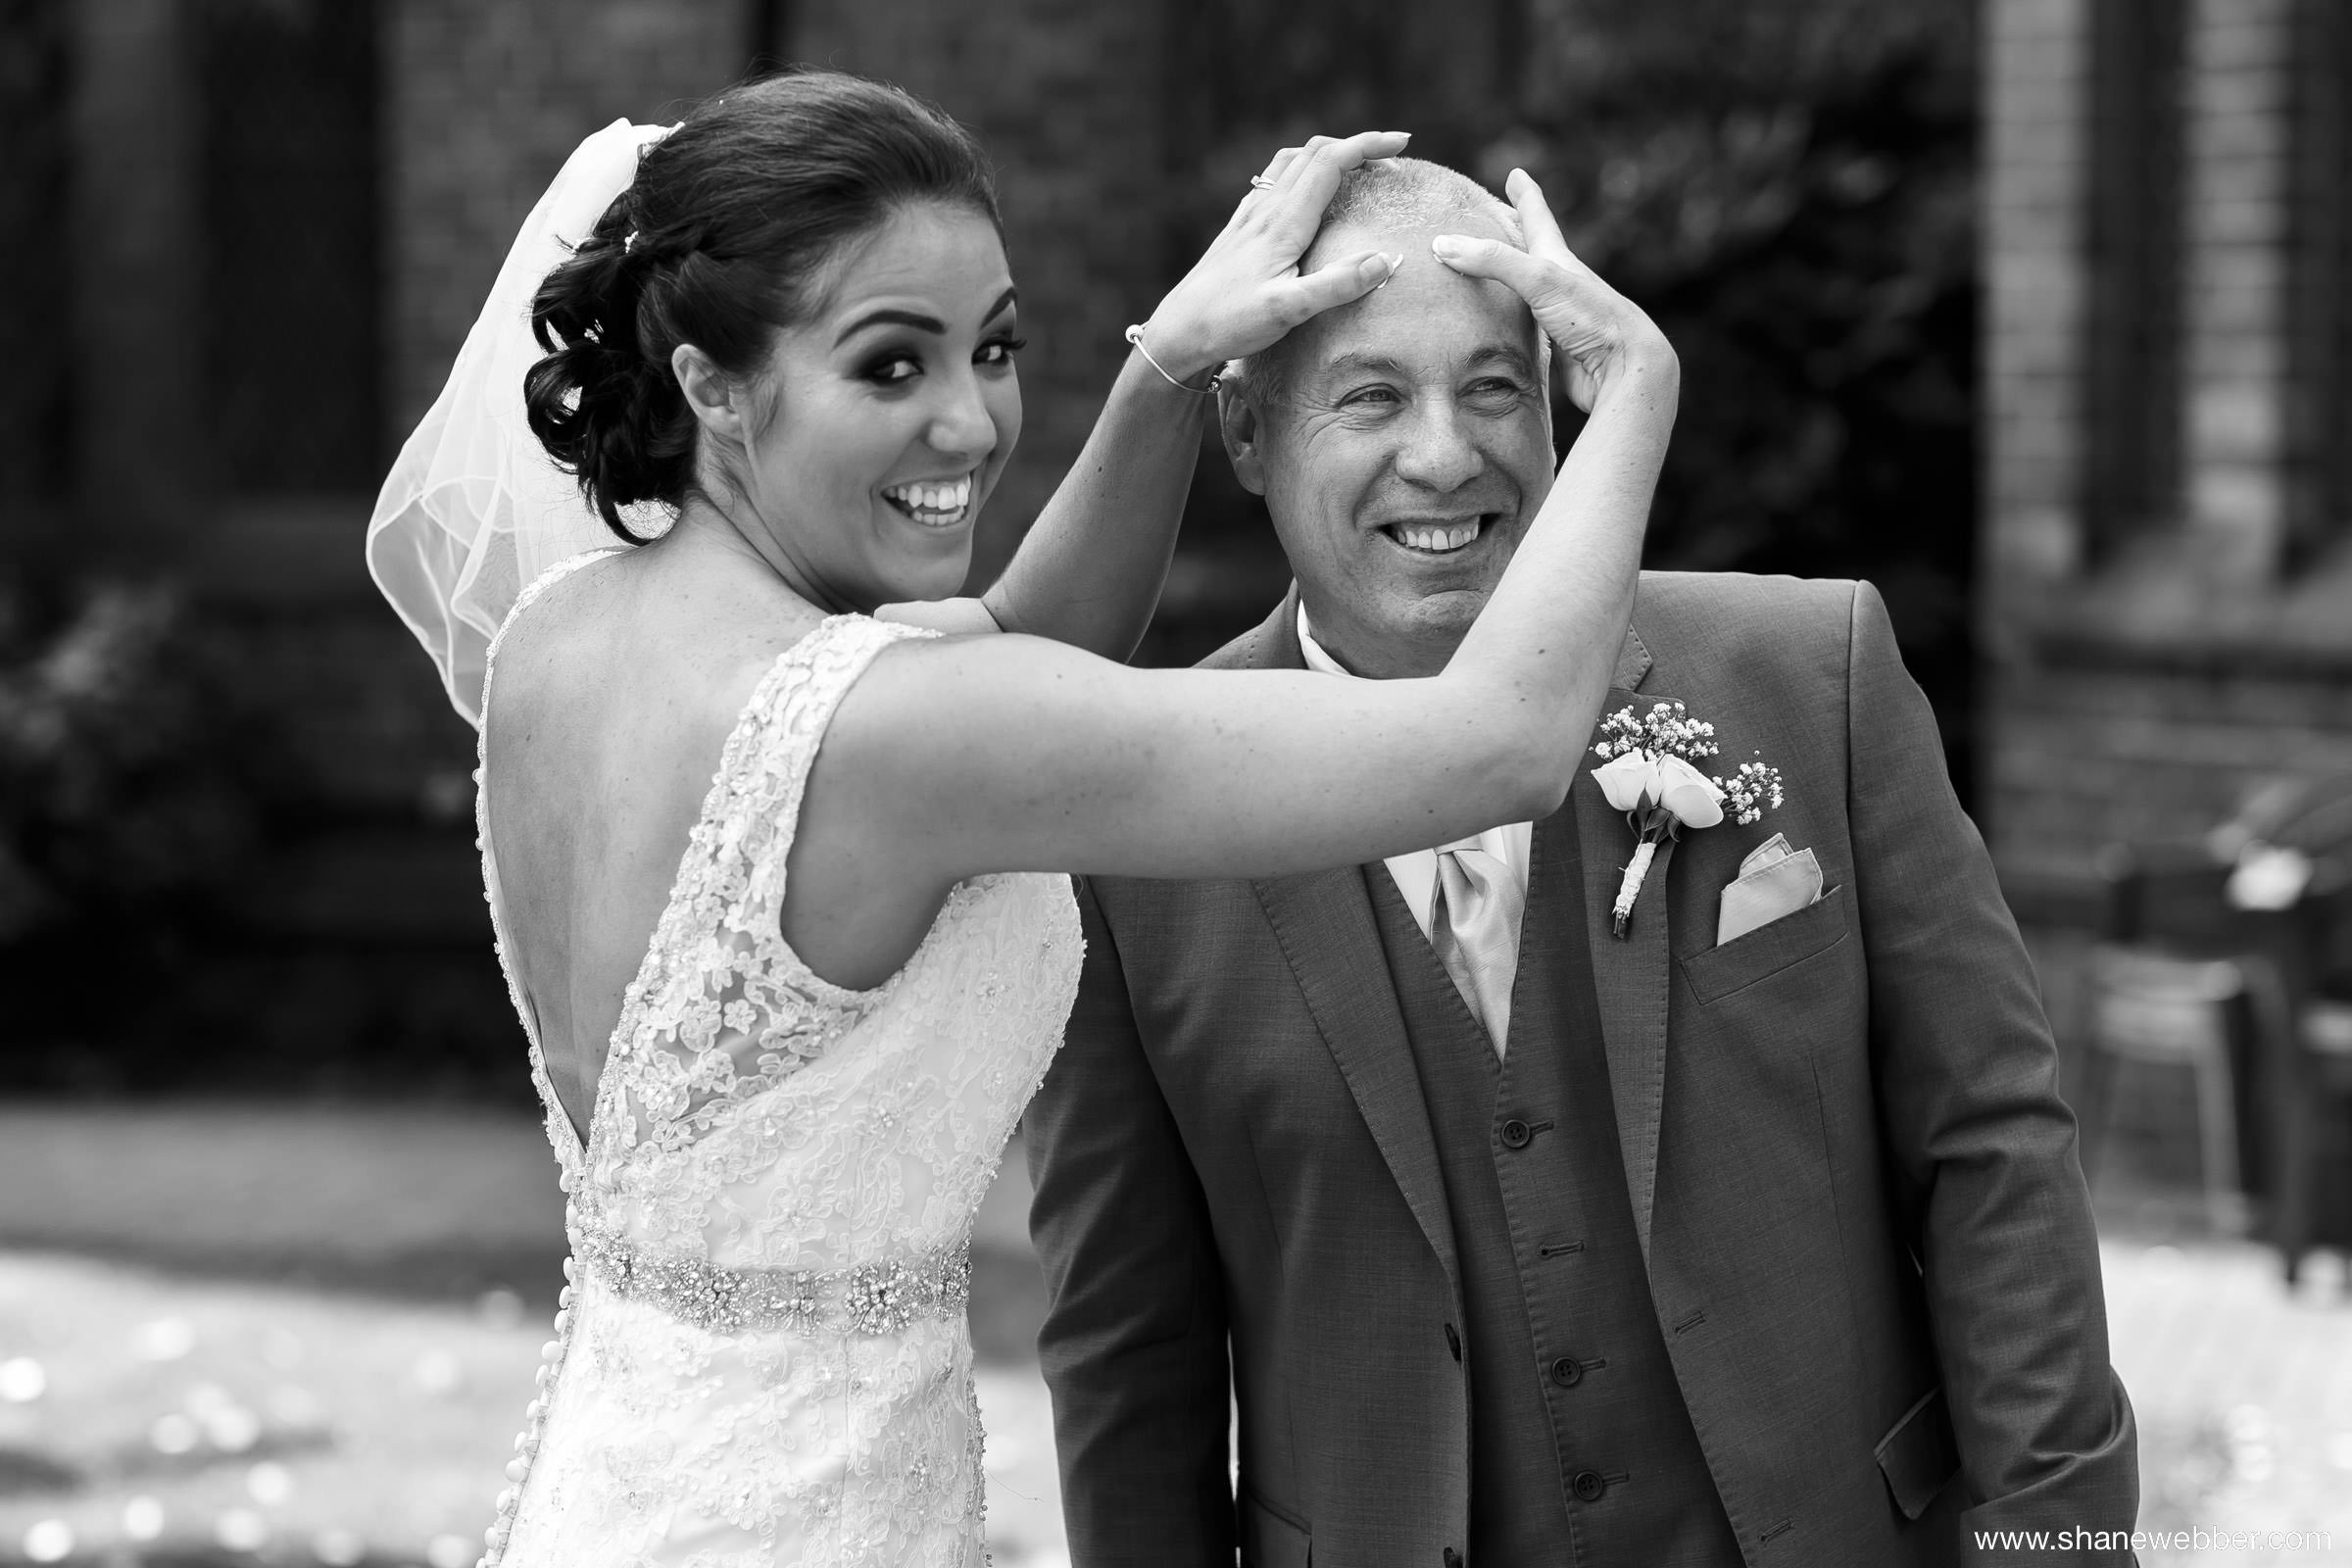 Natural wedding photography at the Gorton Monastery Manchester